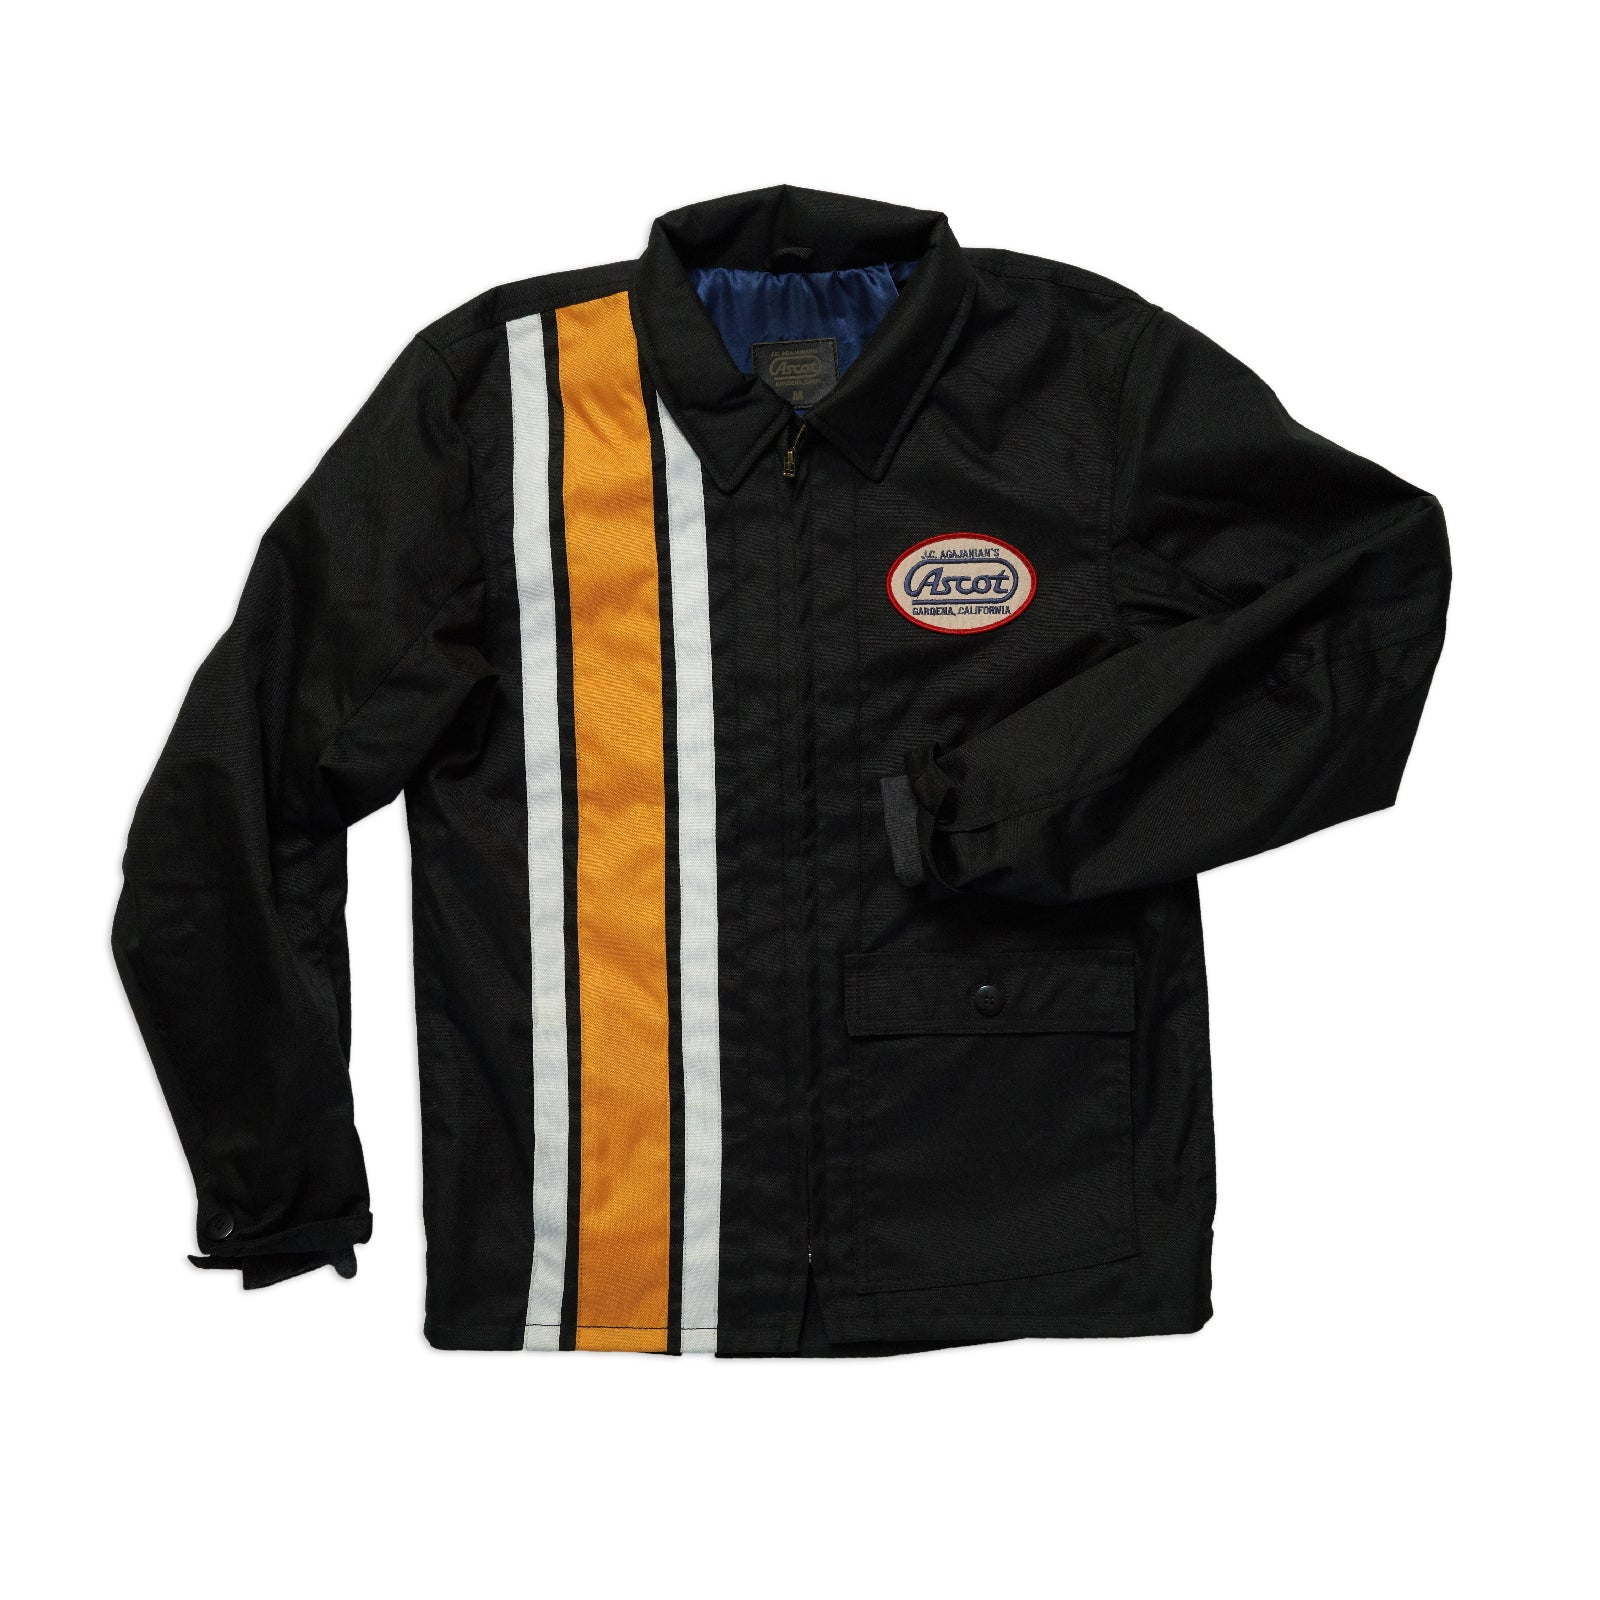 Men's Coaches Jacket - Black / Yellow